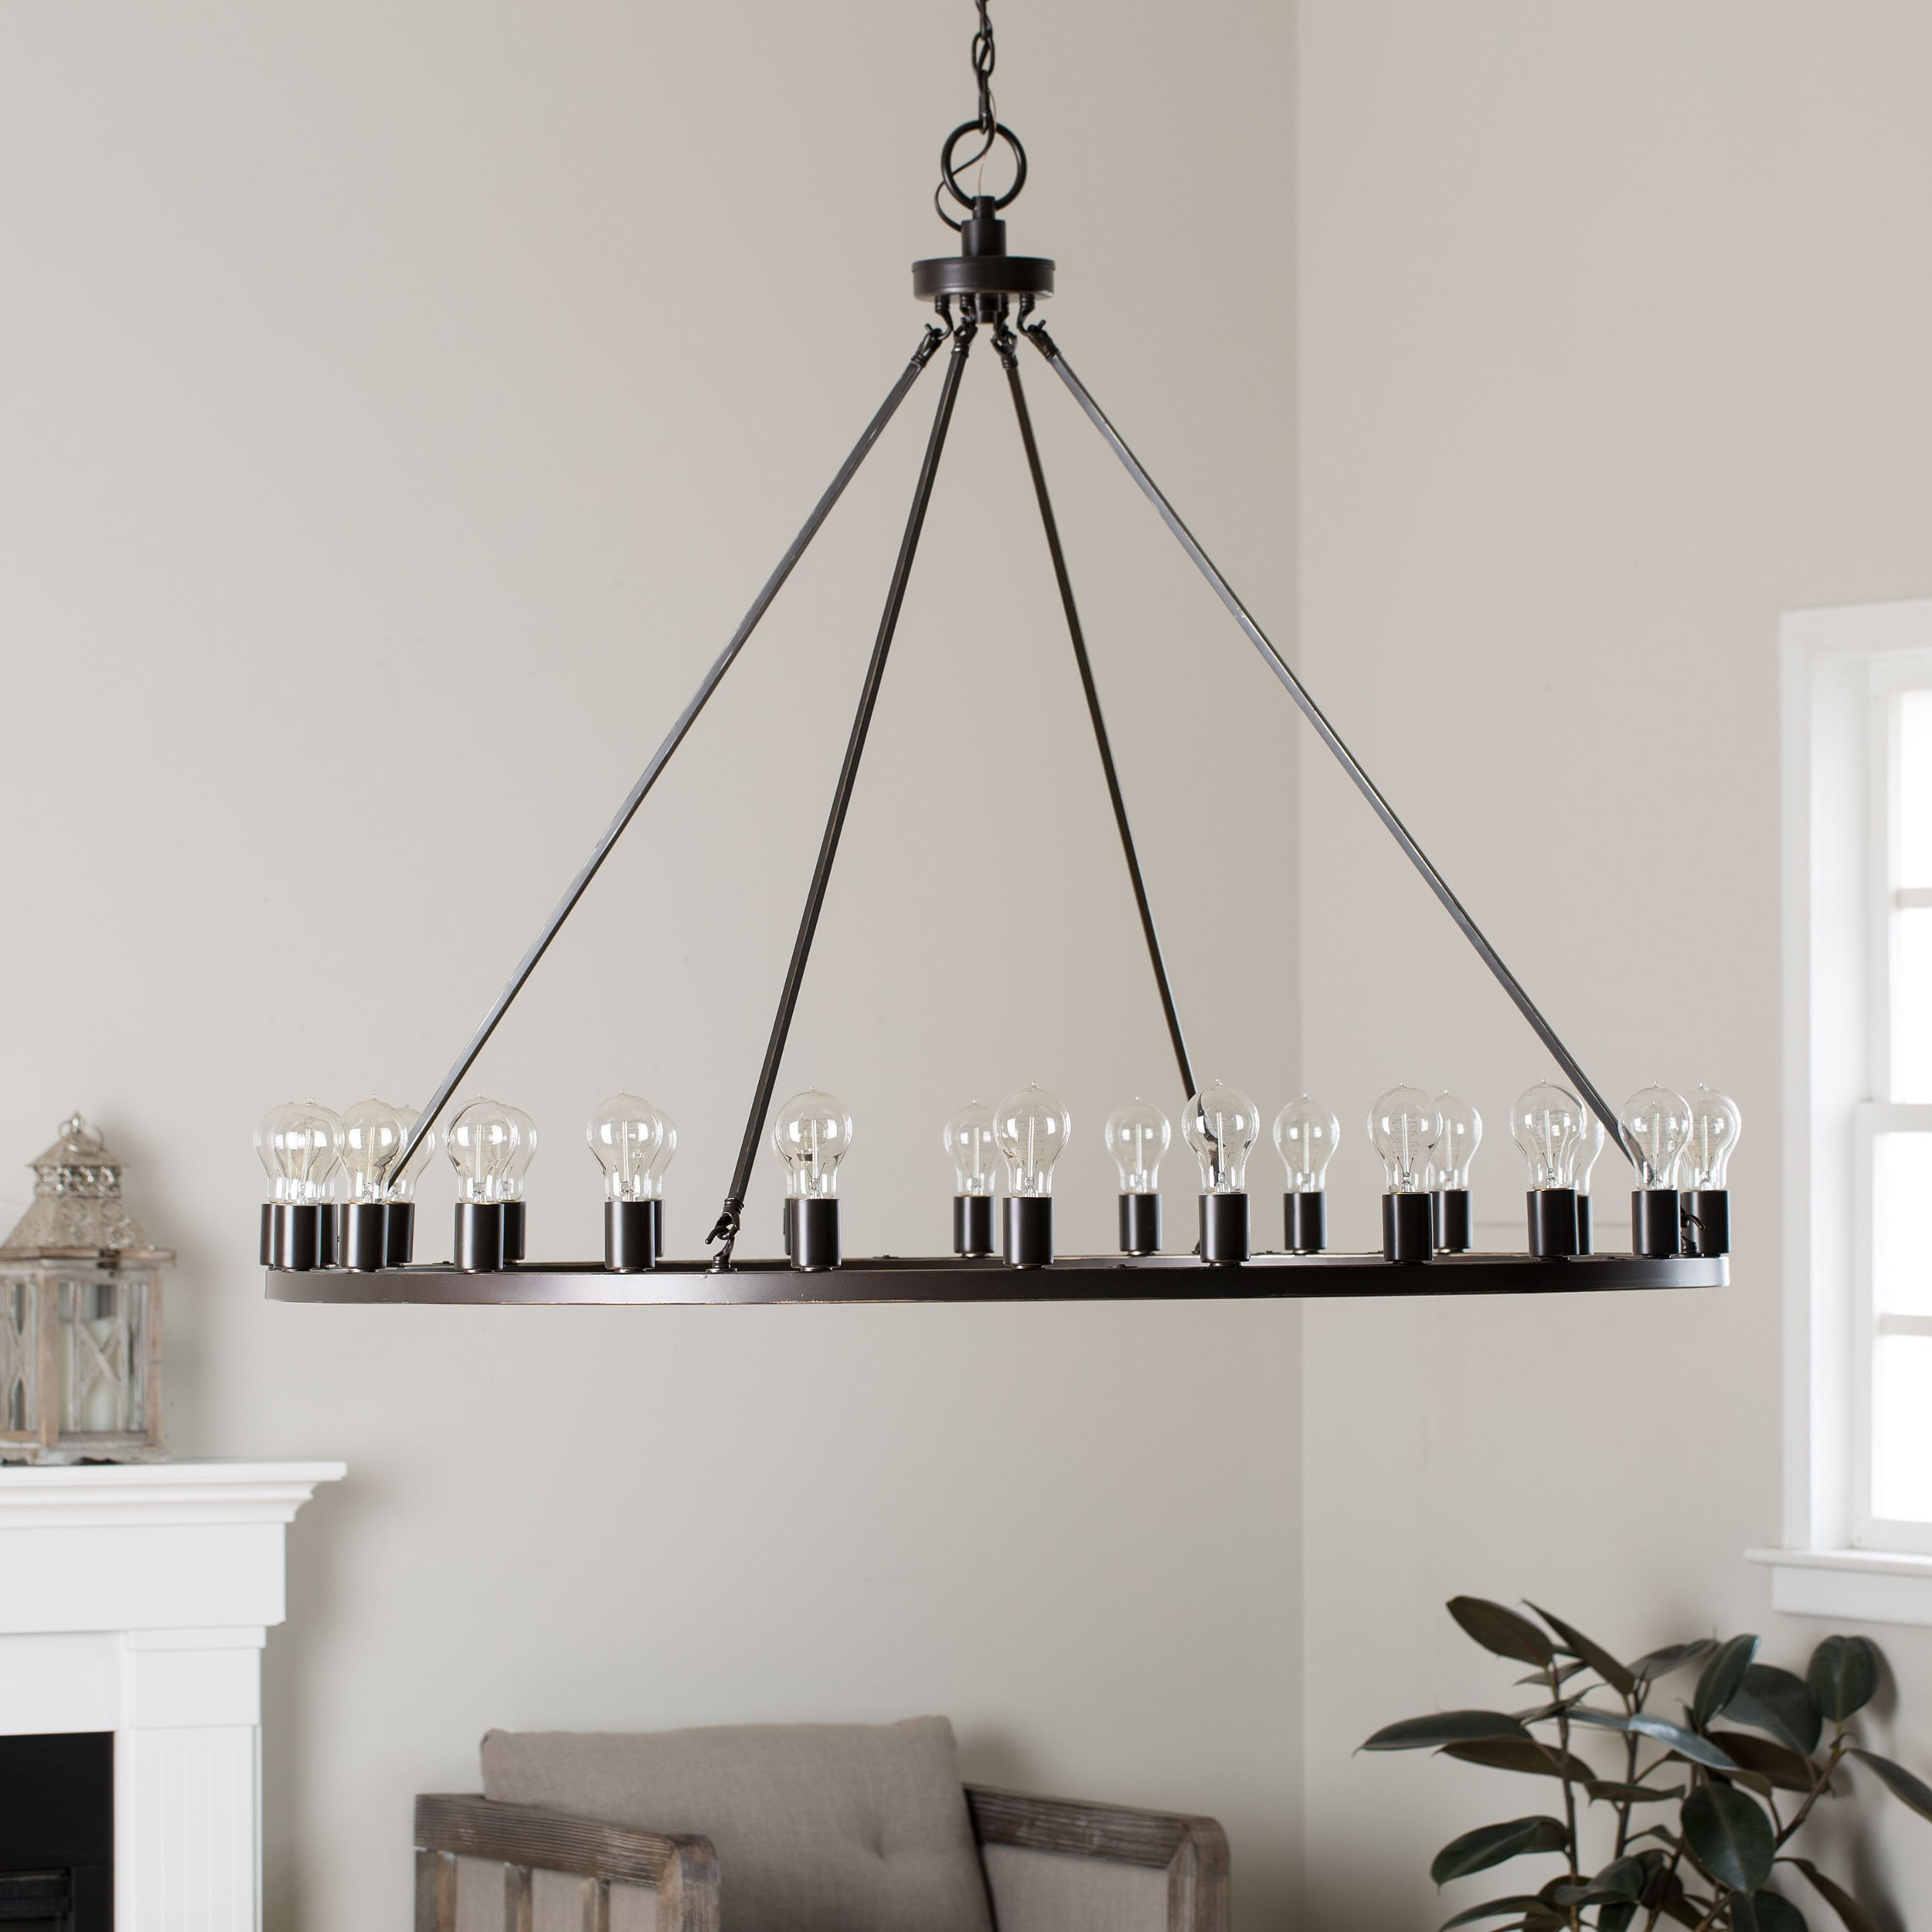 Liam oil rubbed bronze 24 light chandelier free shipping today liam oil rubbed bronze 24 light chandelier free shipping today overstock 16100945 arubaitofo Gallery